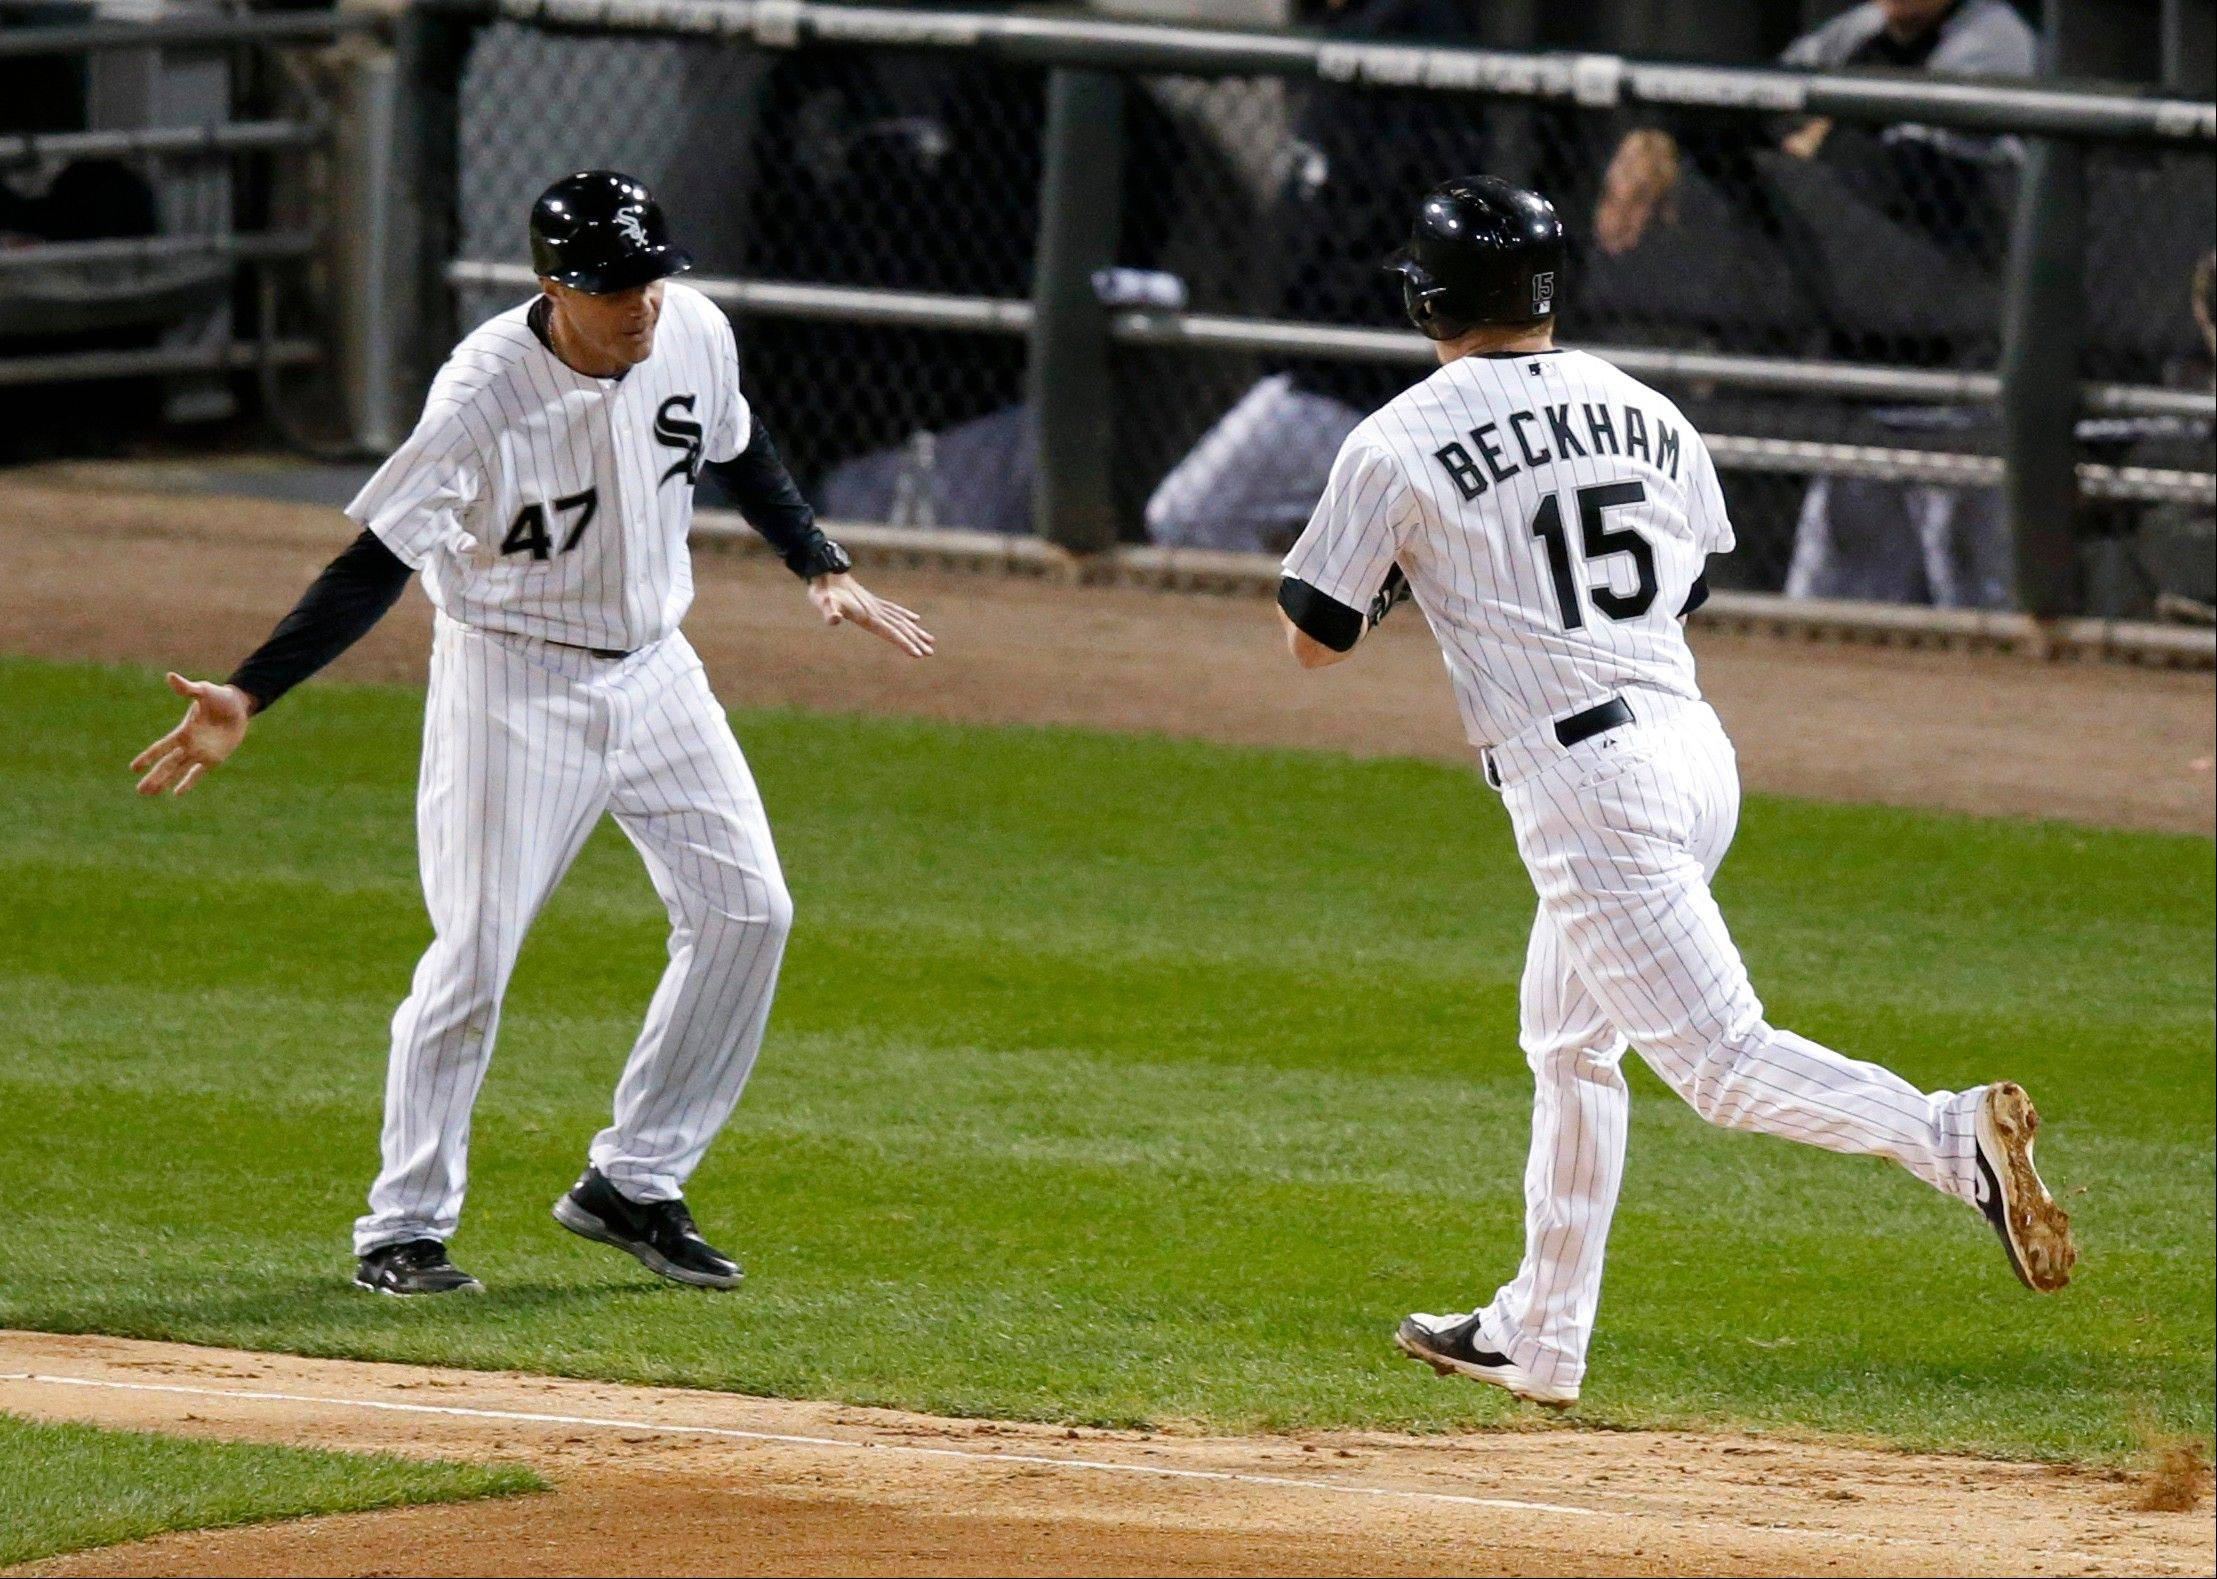 White Sox third base coach Joe McEwing (47) greets Gordon Beckham at third after Beckham's home run off Kansas City Royals starting pitcher James Shields during the sixth inning of a baseball game Friday, Sept. 27, 2013, in Chicago. (AP Photo/Charles Rex Arbogast)